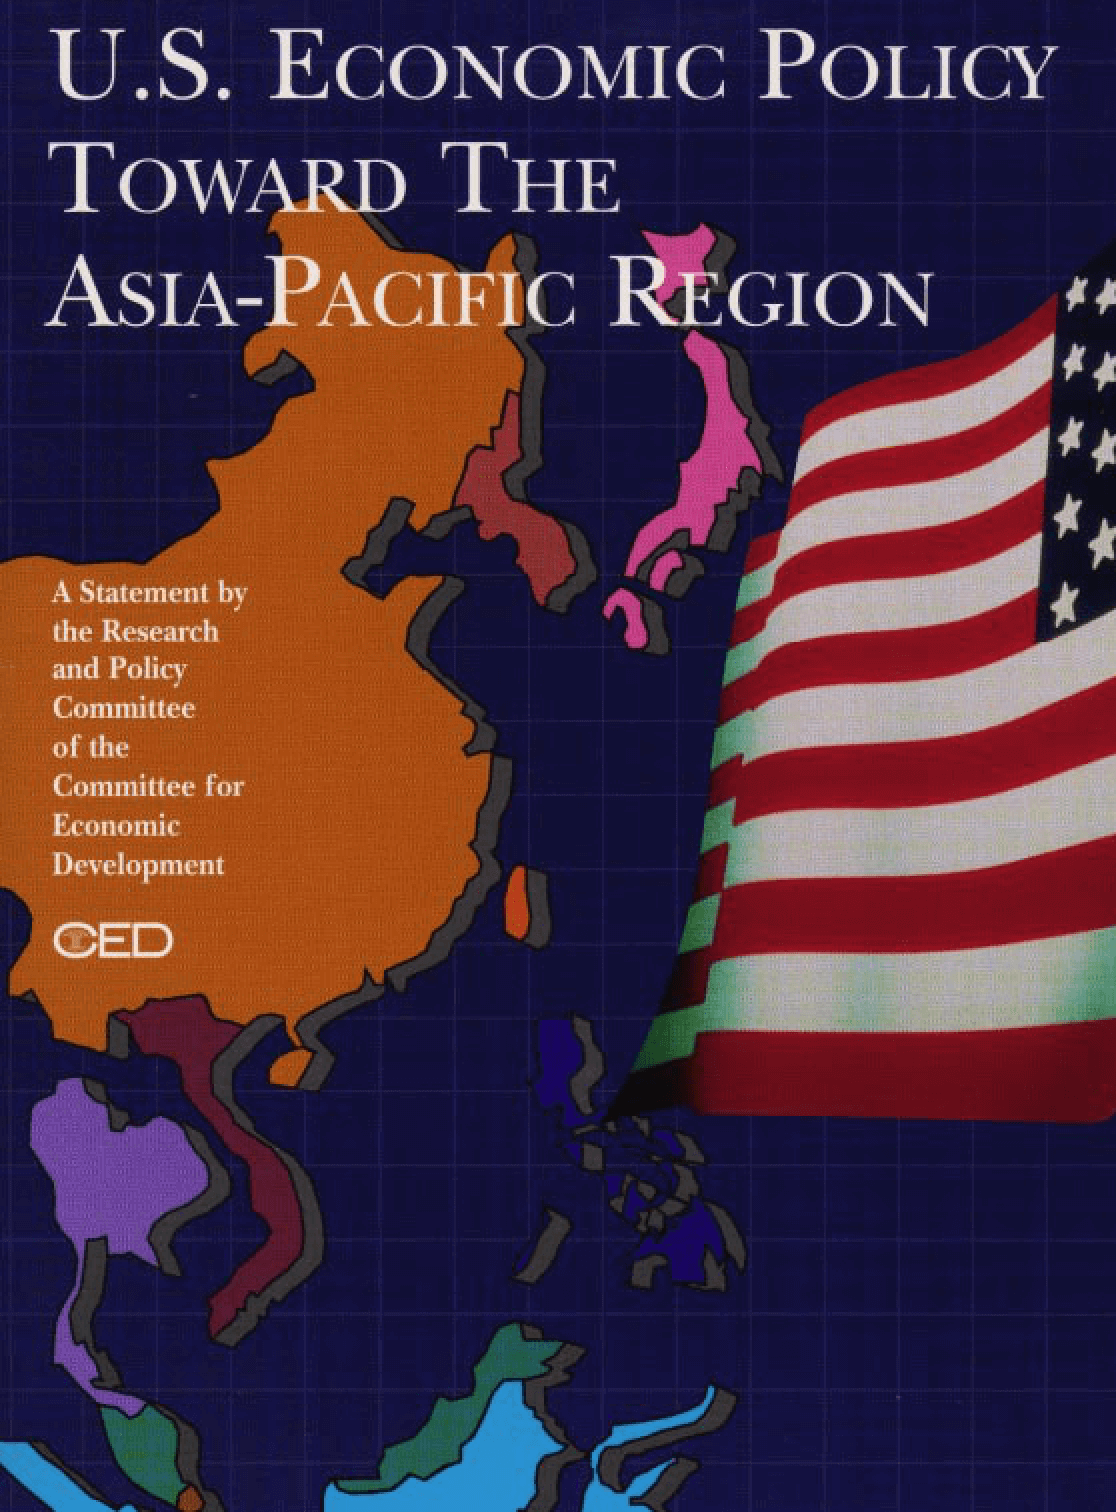 U.S. Economic Policy Toward The Asia-Pacific Region